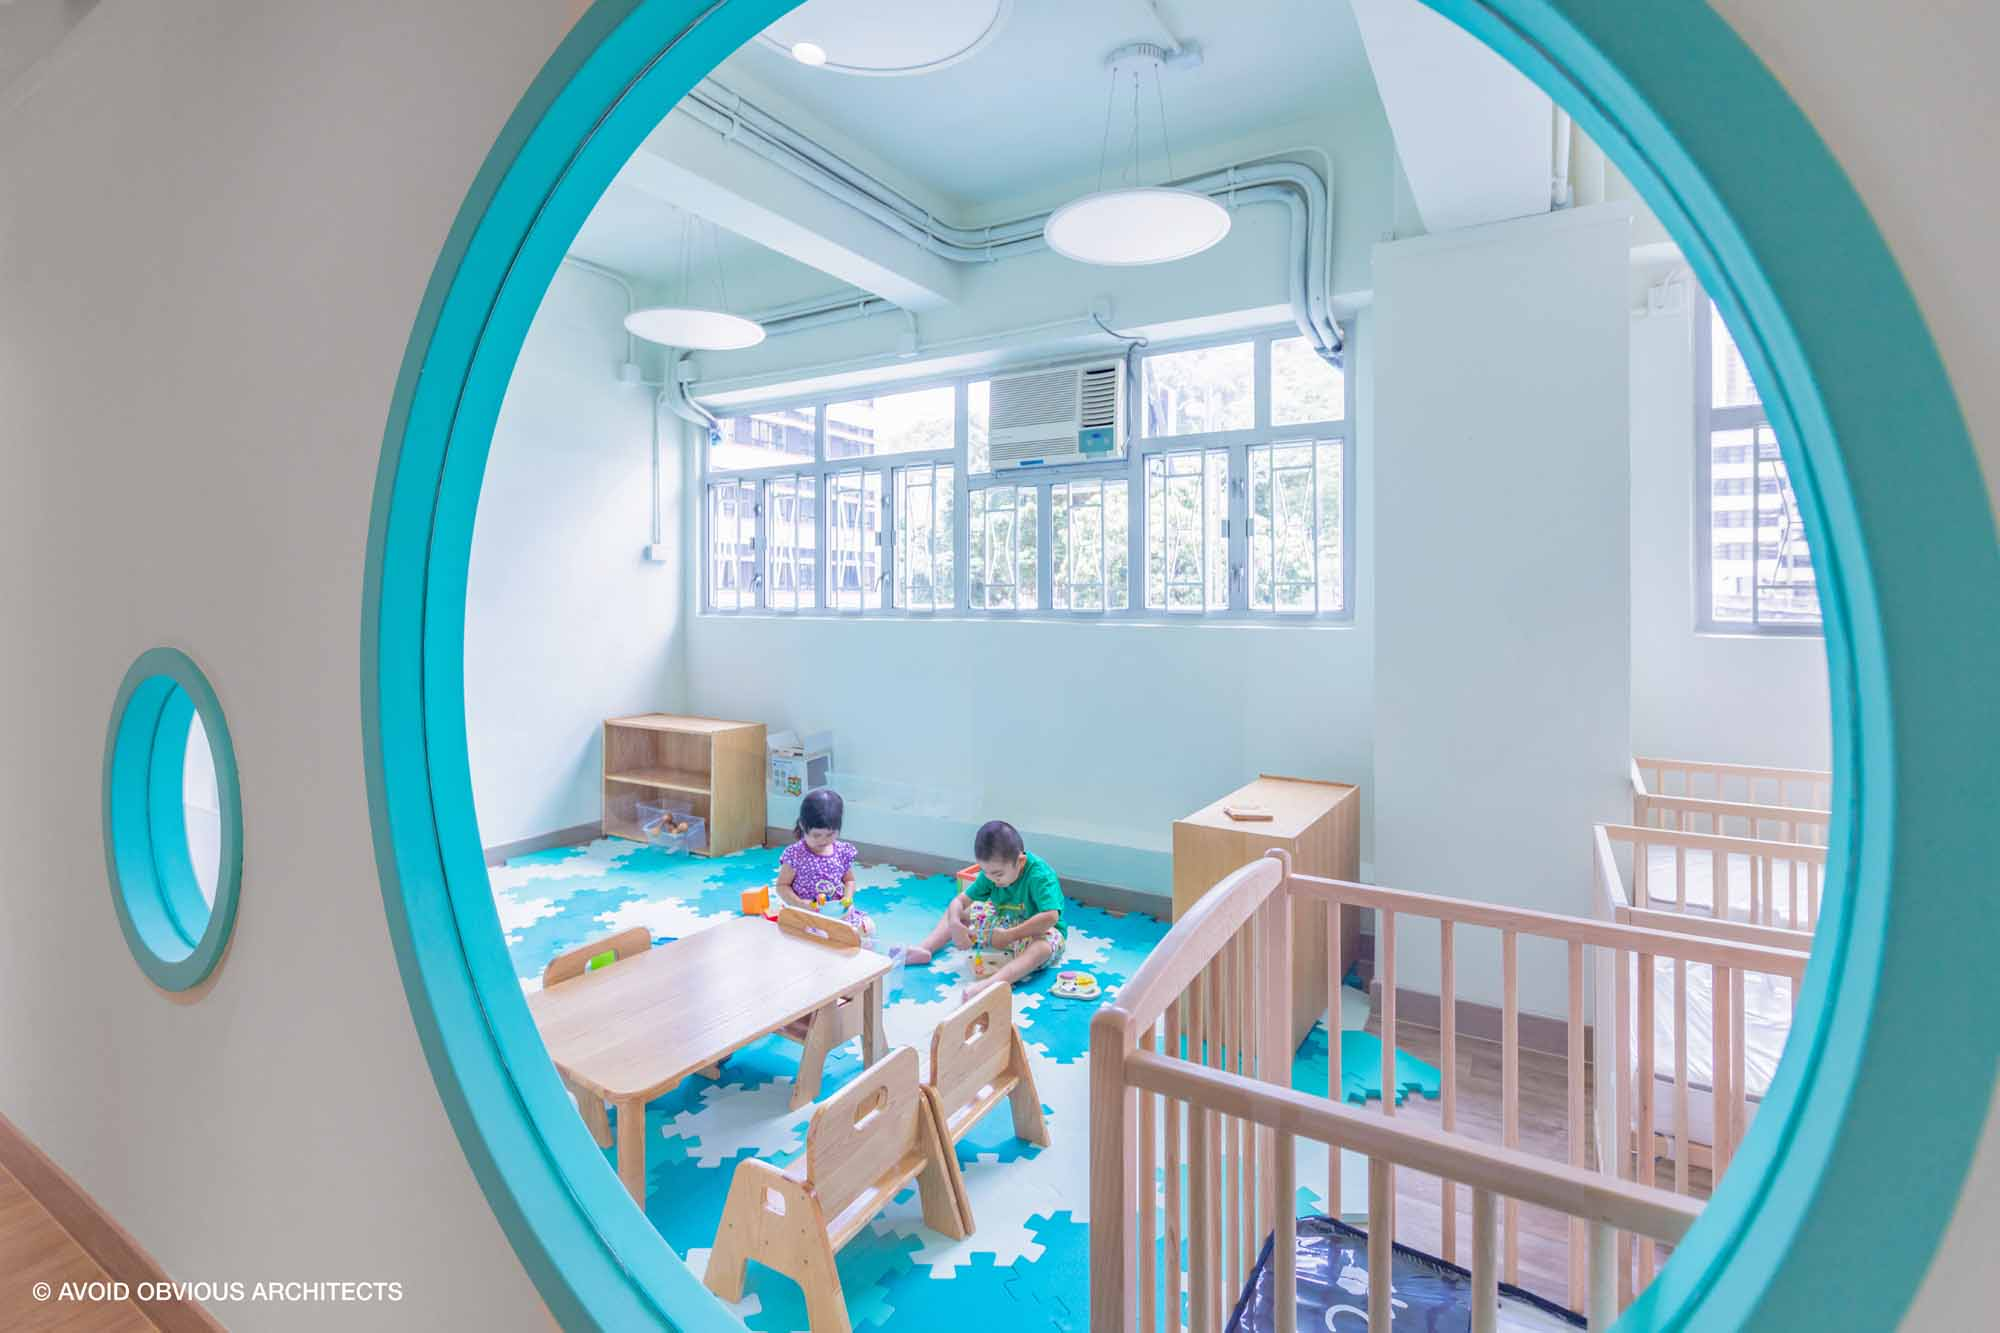 avoid obvious, architects, vicky chan, AOA, onesky, education center, school, pre-k, kindergarten, k-12, design, non-profit, hong kong, interactive, design, learning, early childhood, ngo, children design, play design, creative, play, reggio emilia,